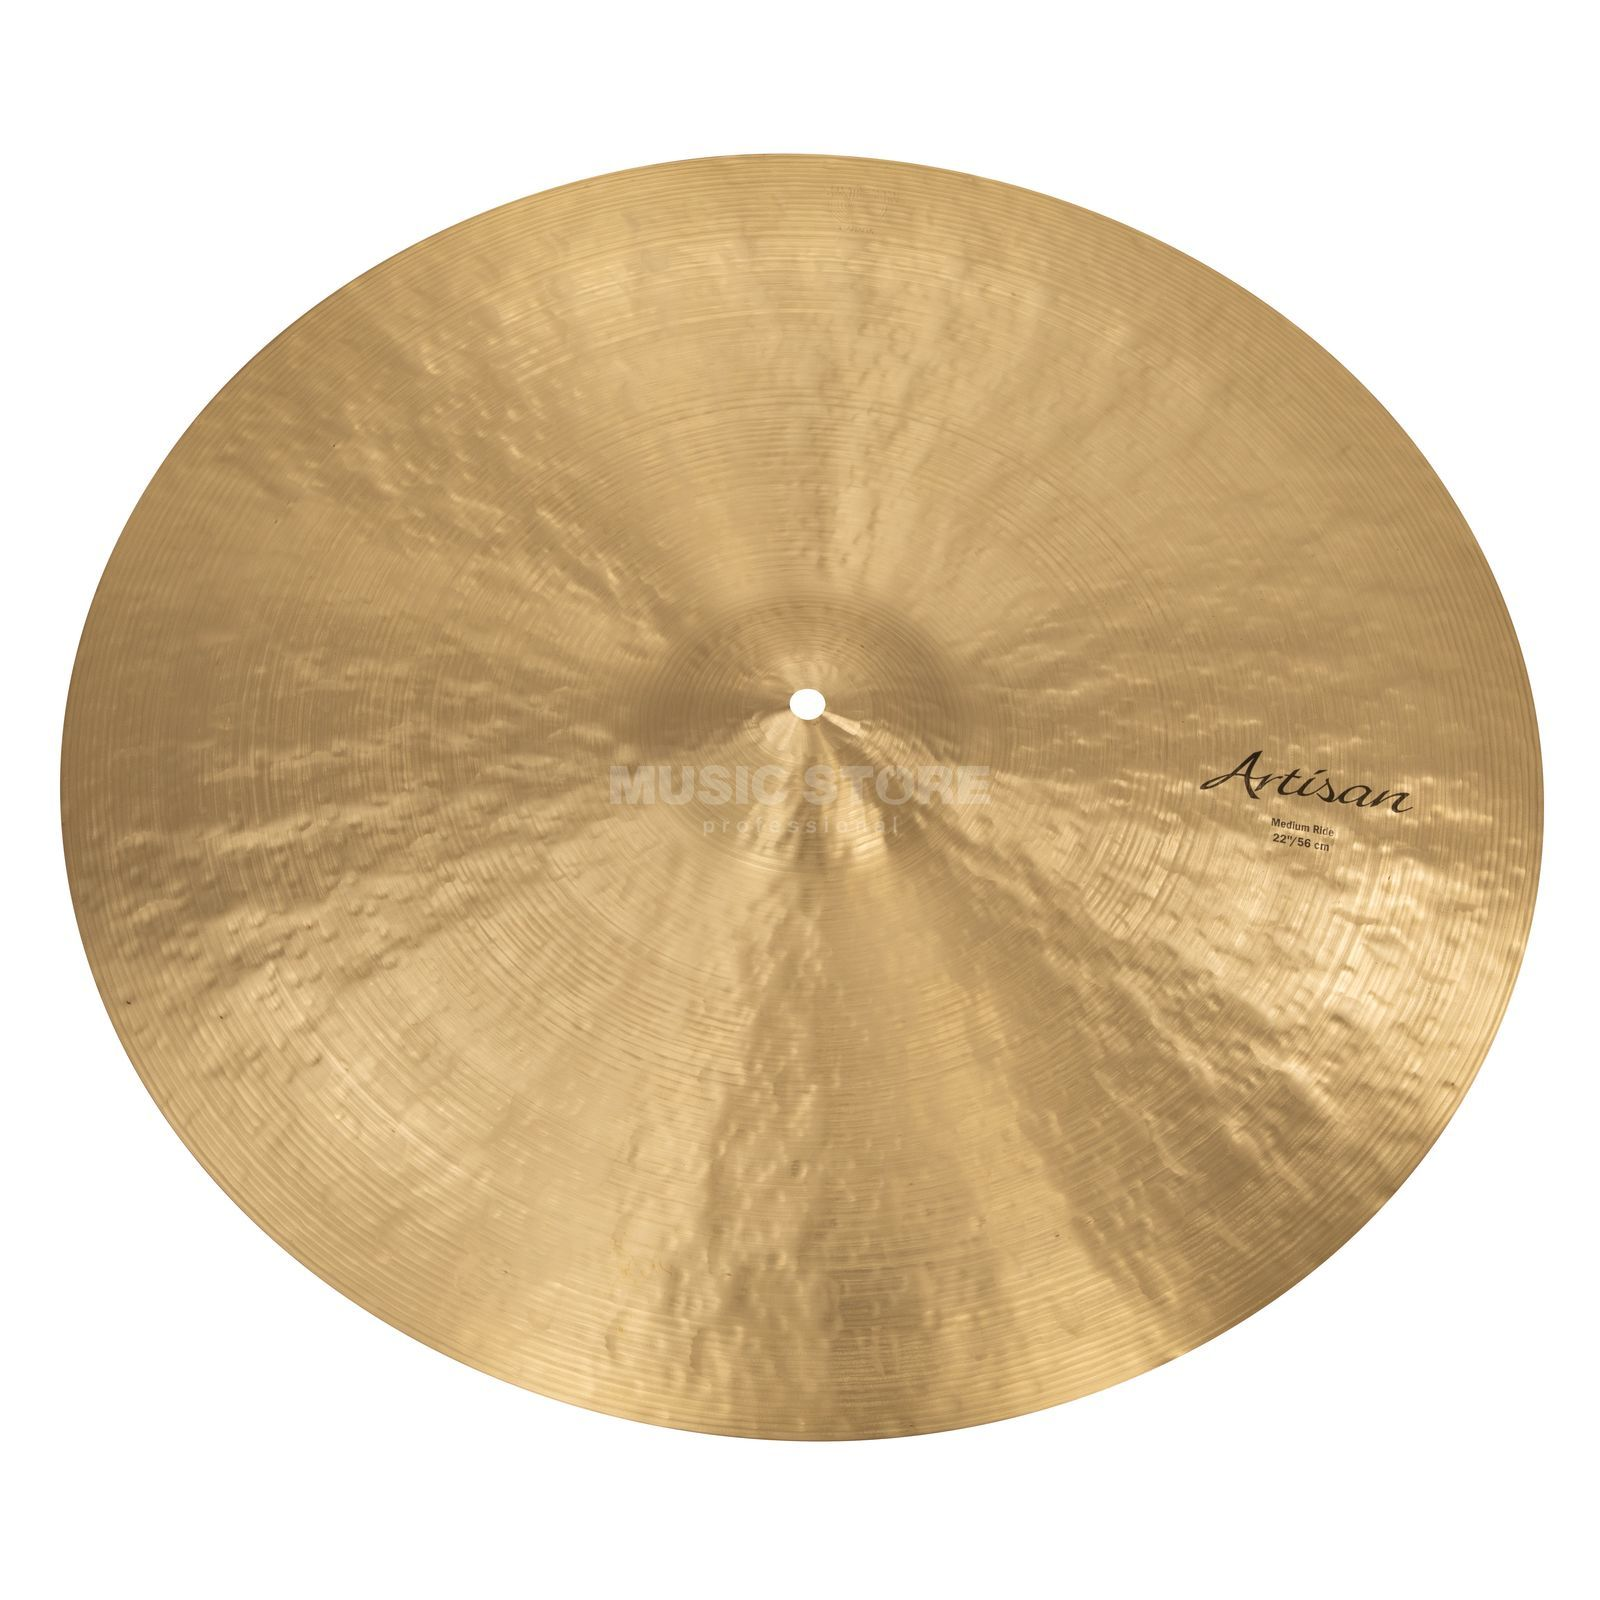 "Sabian Artisan Medium Ride 22"", Natural Finish Produktbild"